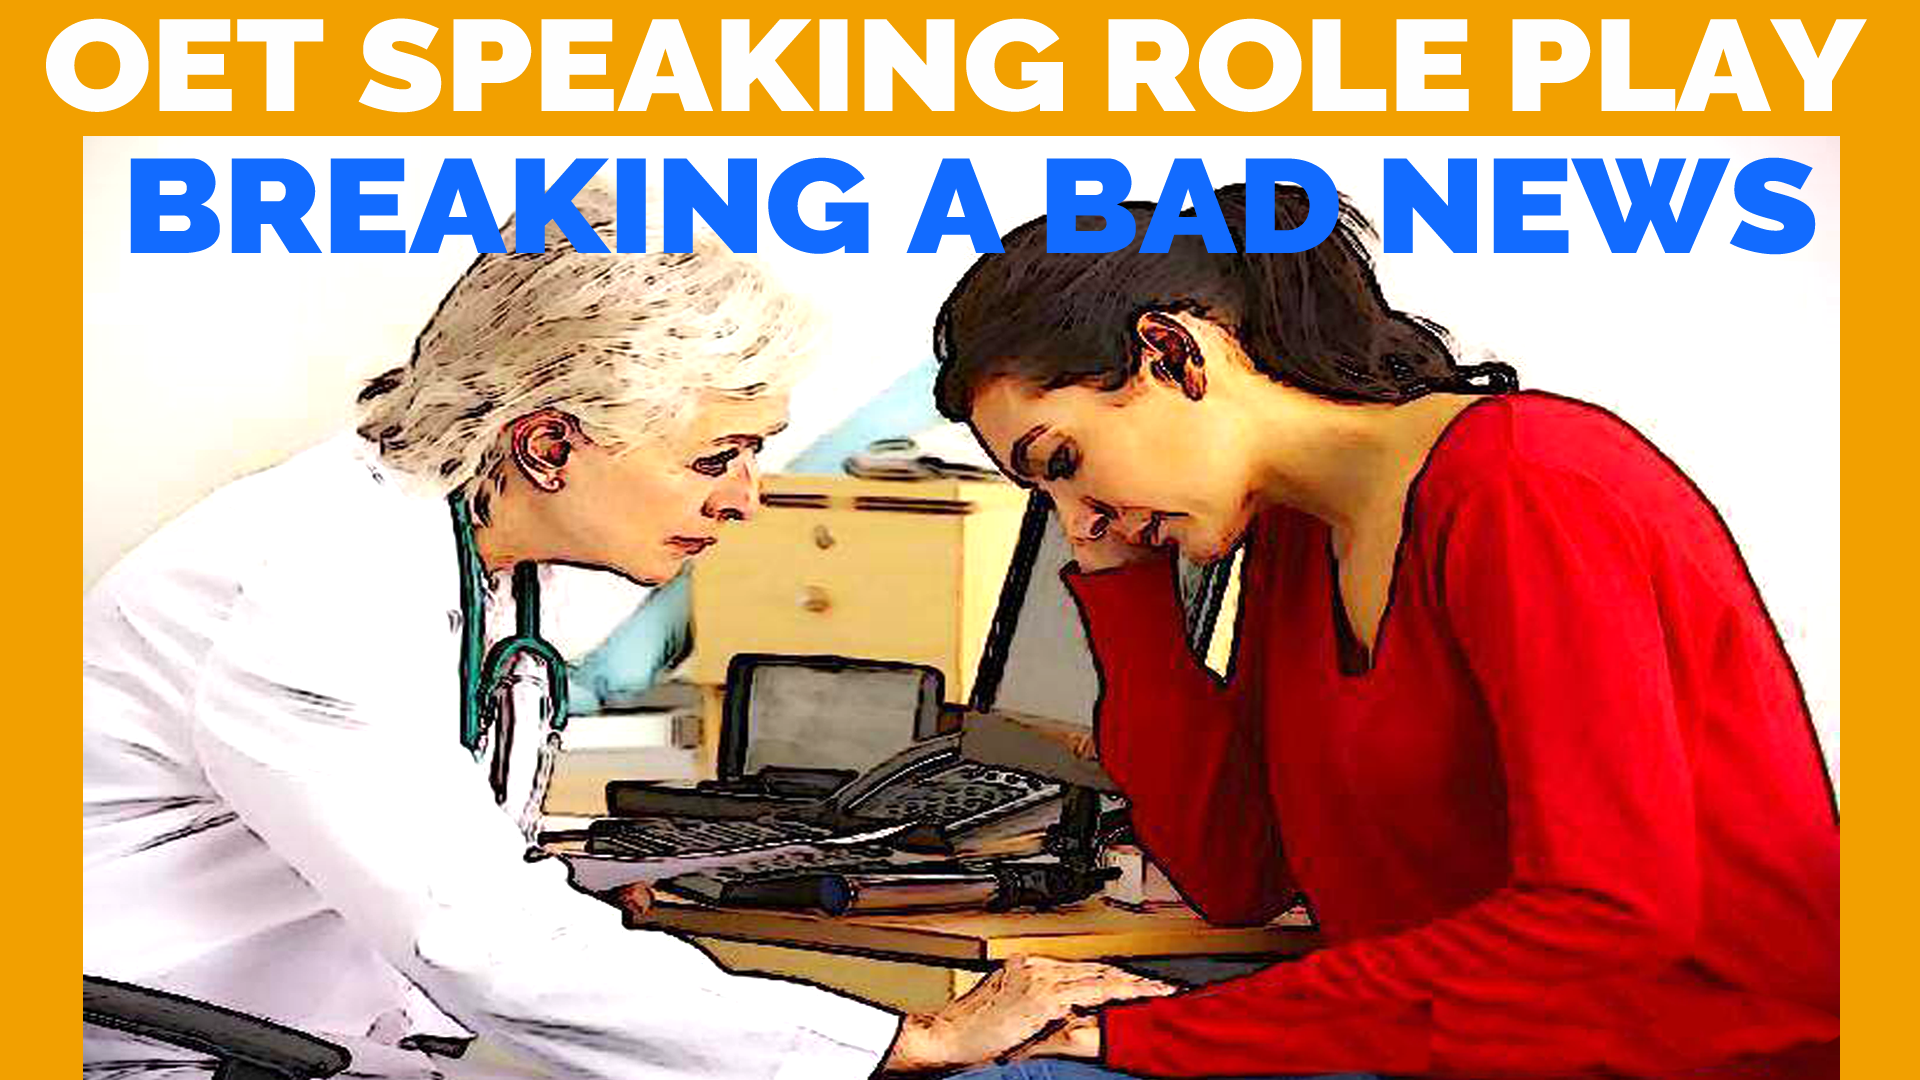 OET Speaking Role Play - Breaking a Bad News